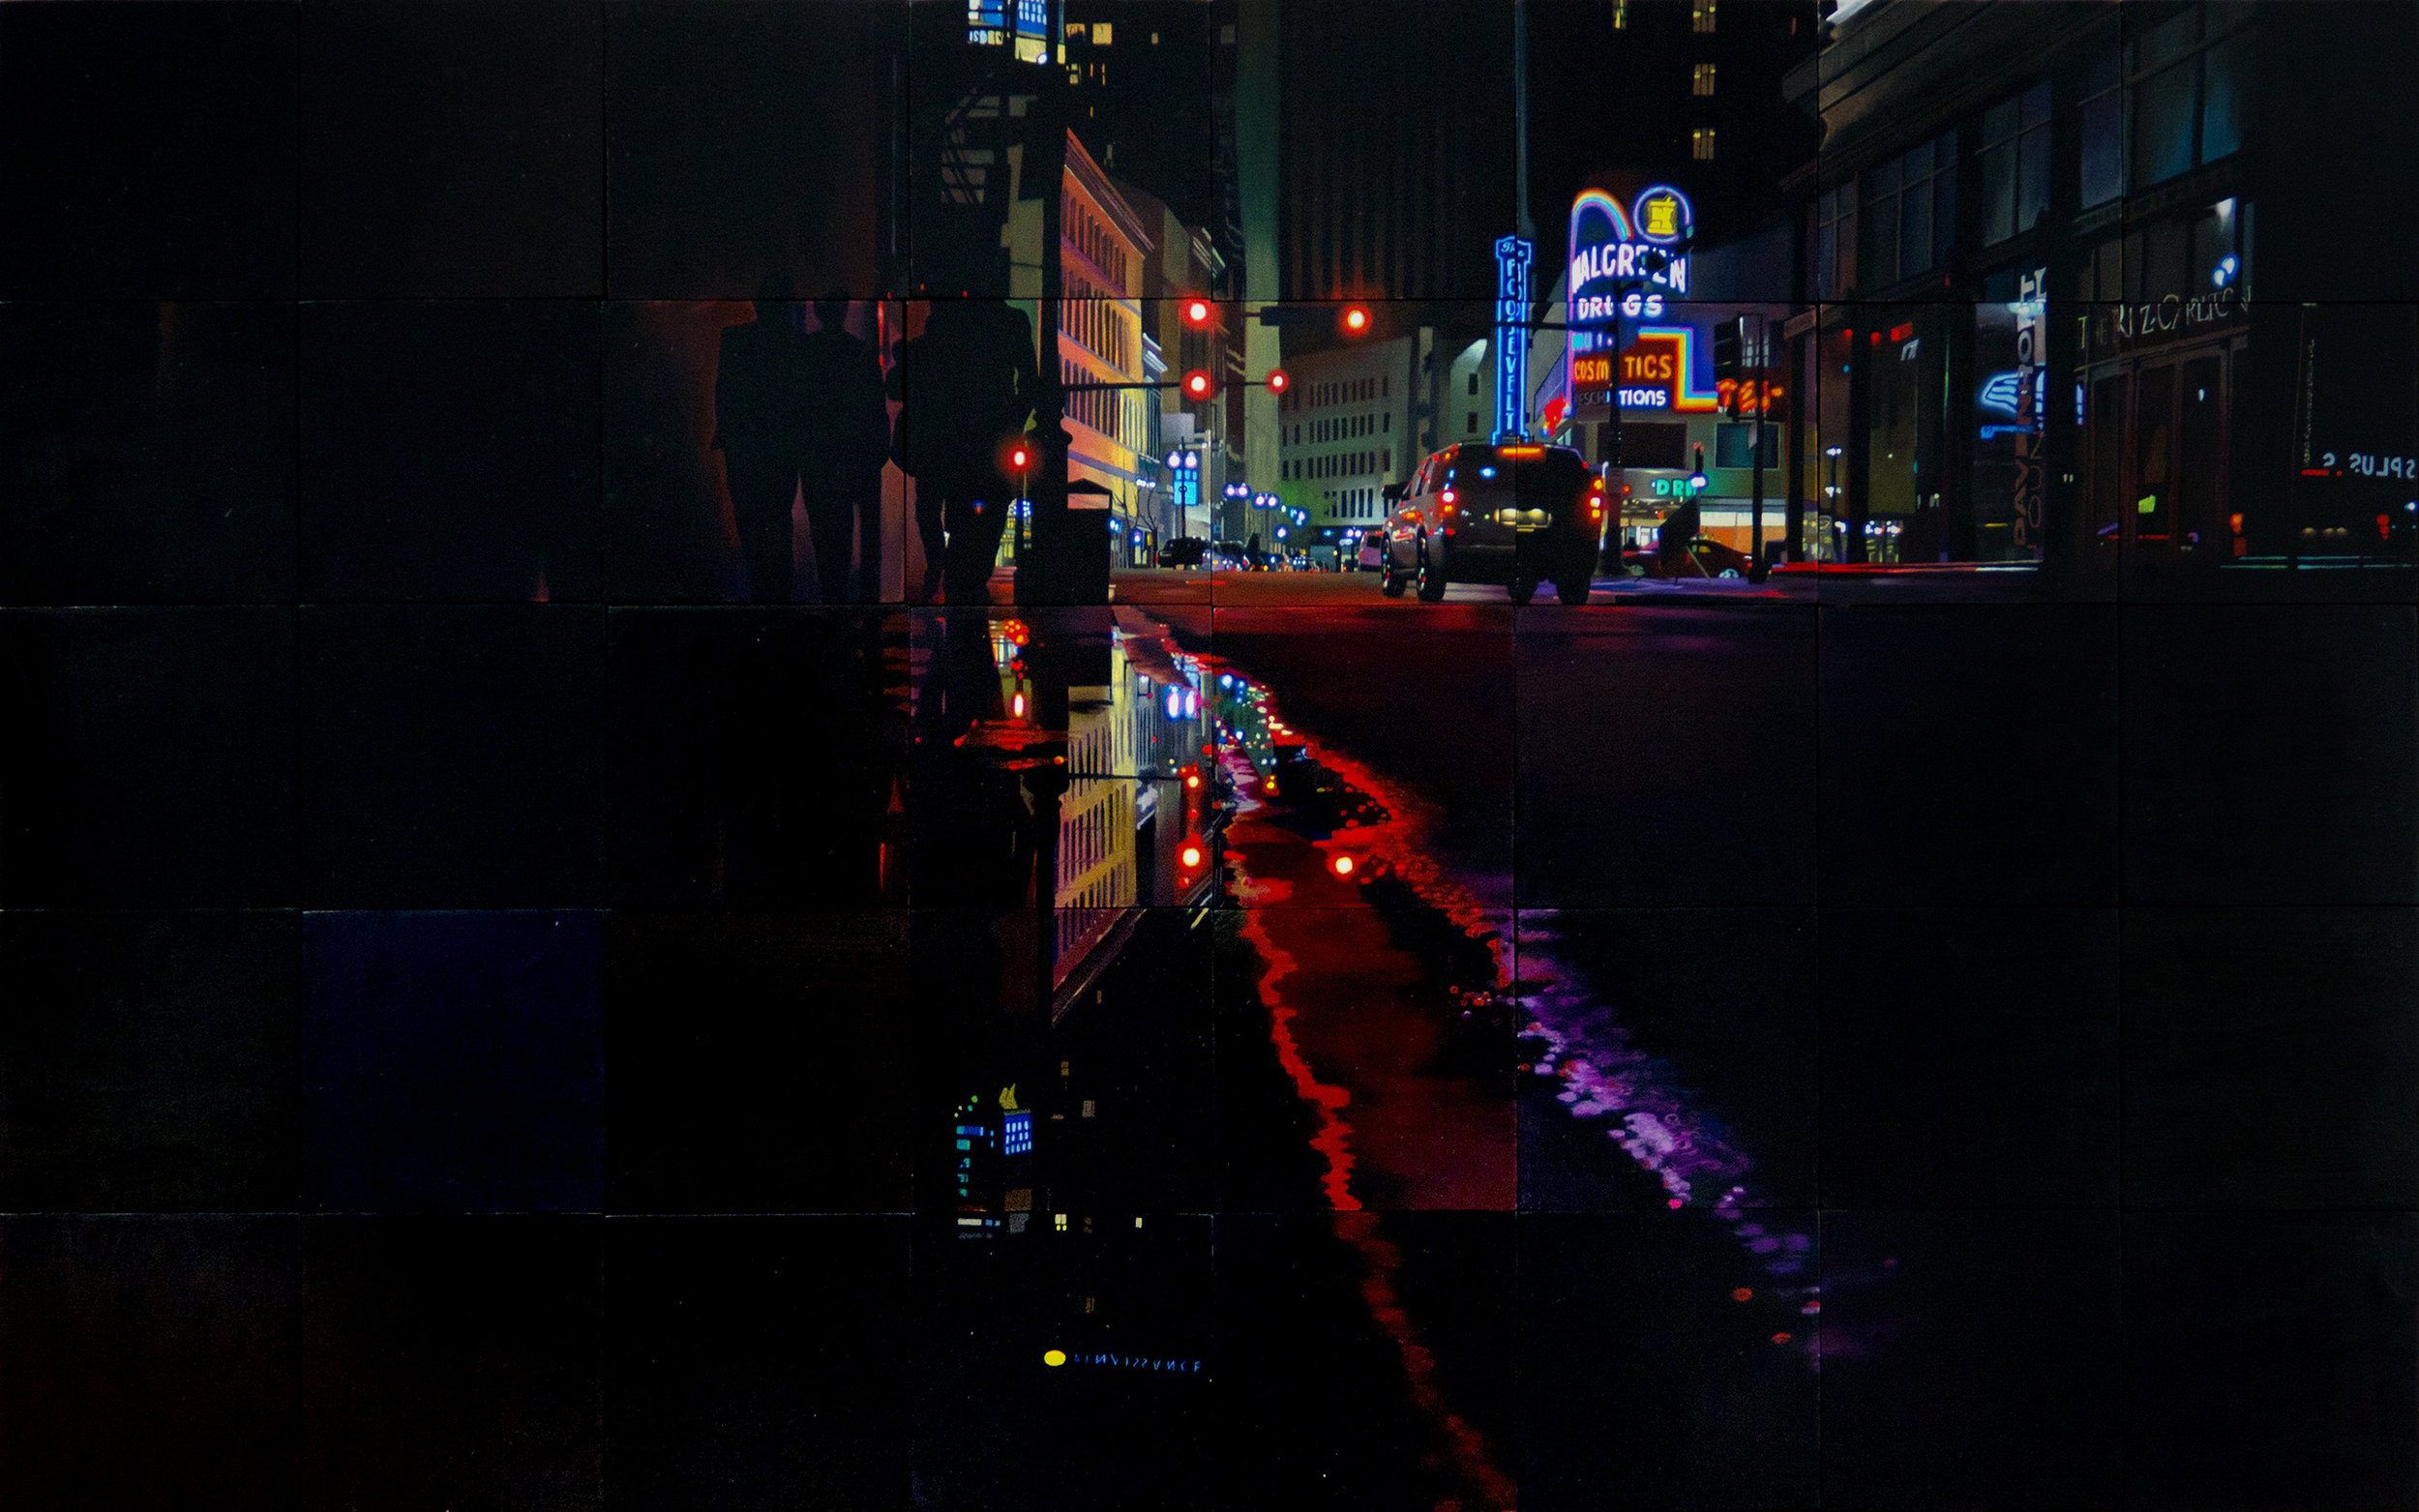 New Orleans Night Puddle 24x40